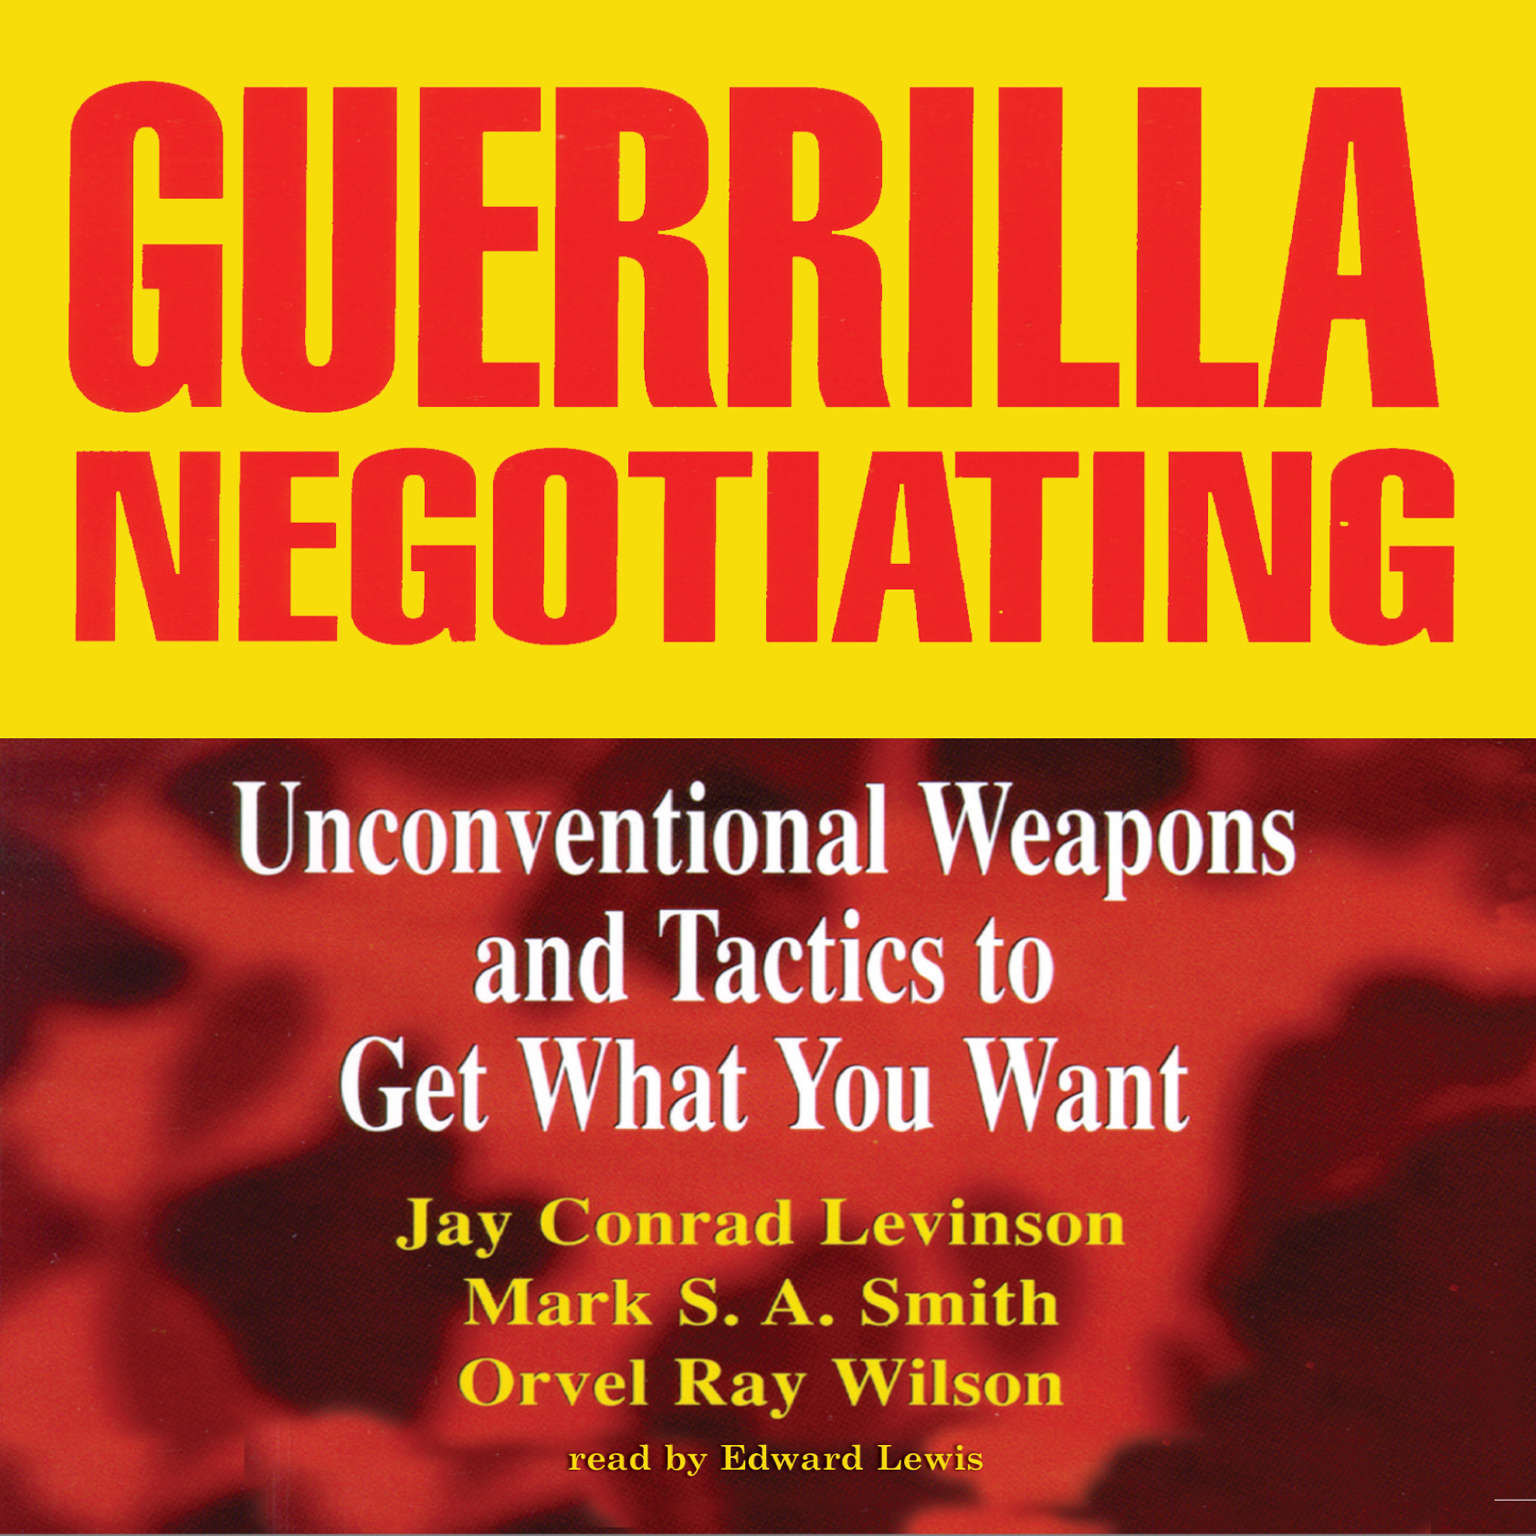 Printable Guerrilla Negotiating: Unconventional Weapons and Tactics to Get What You Want Audiobook Cover Art